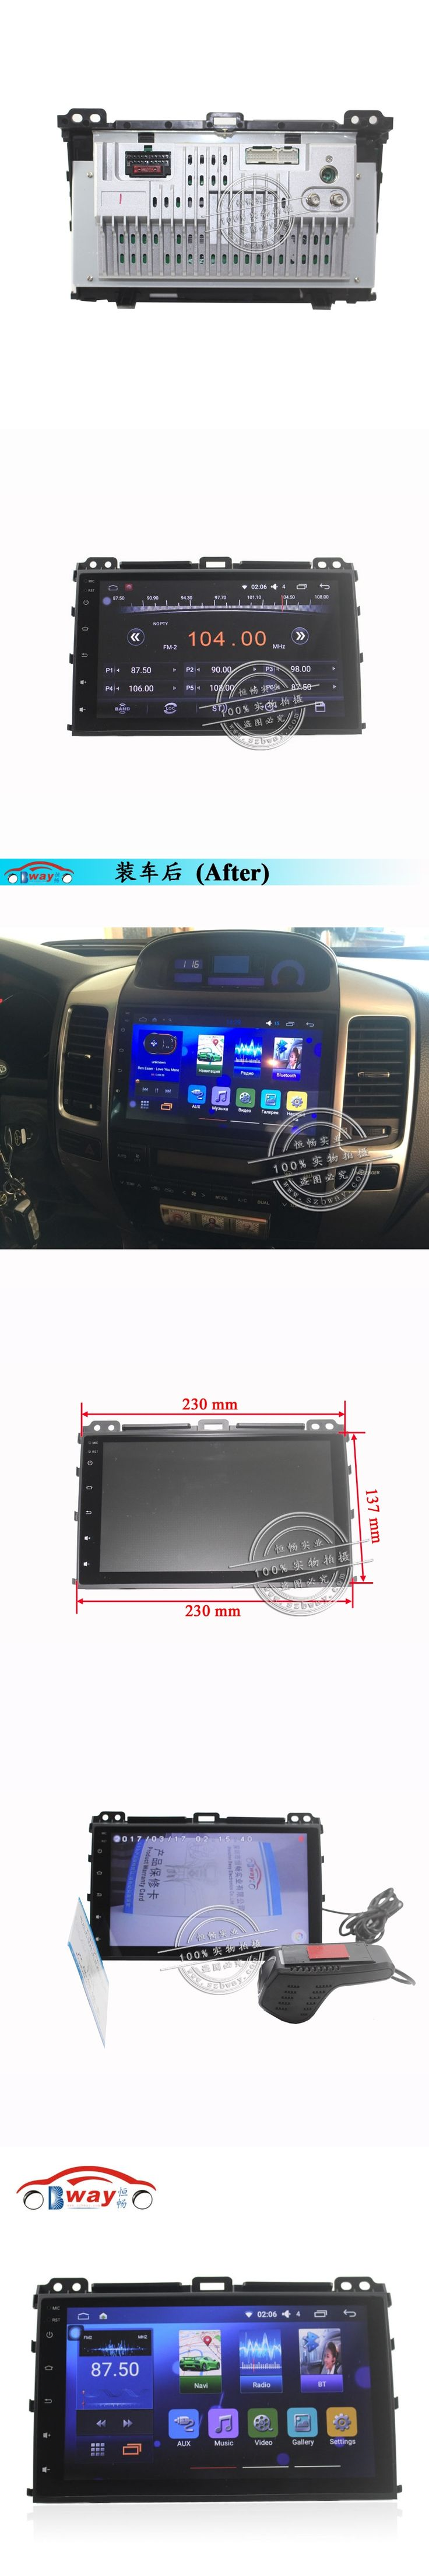 "Free shipping 9"" car radio for Toyota Prado 120 2004-2009 Quadcore Android 5.1 car dvd with 1G RAM,16G iNand,steering wheel"